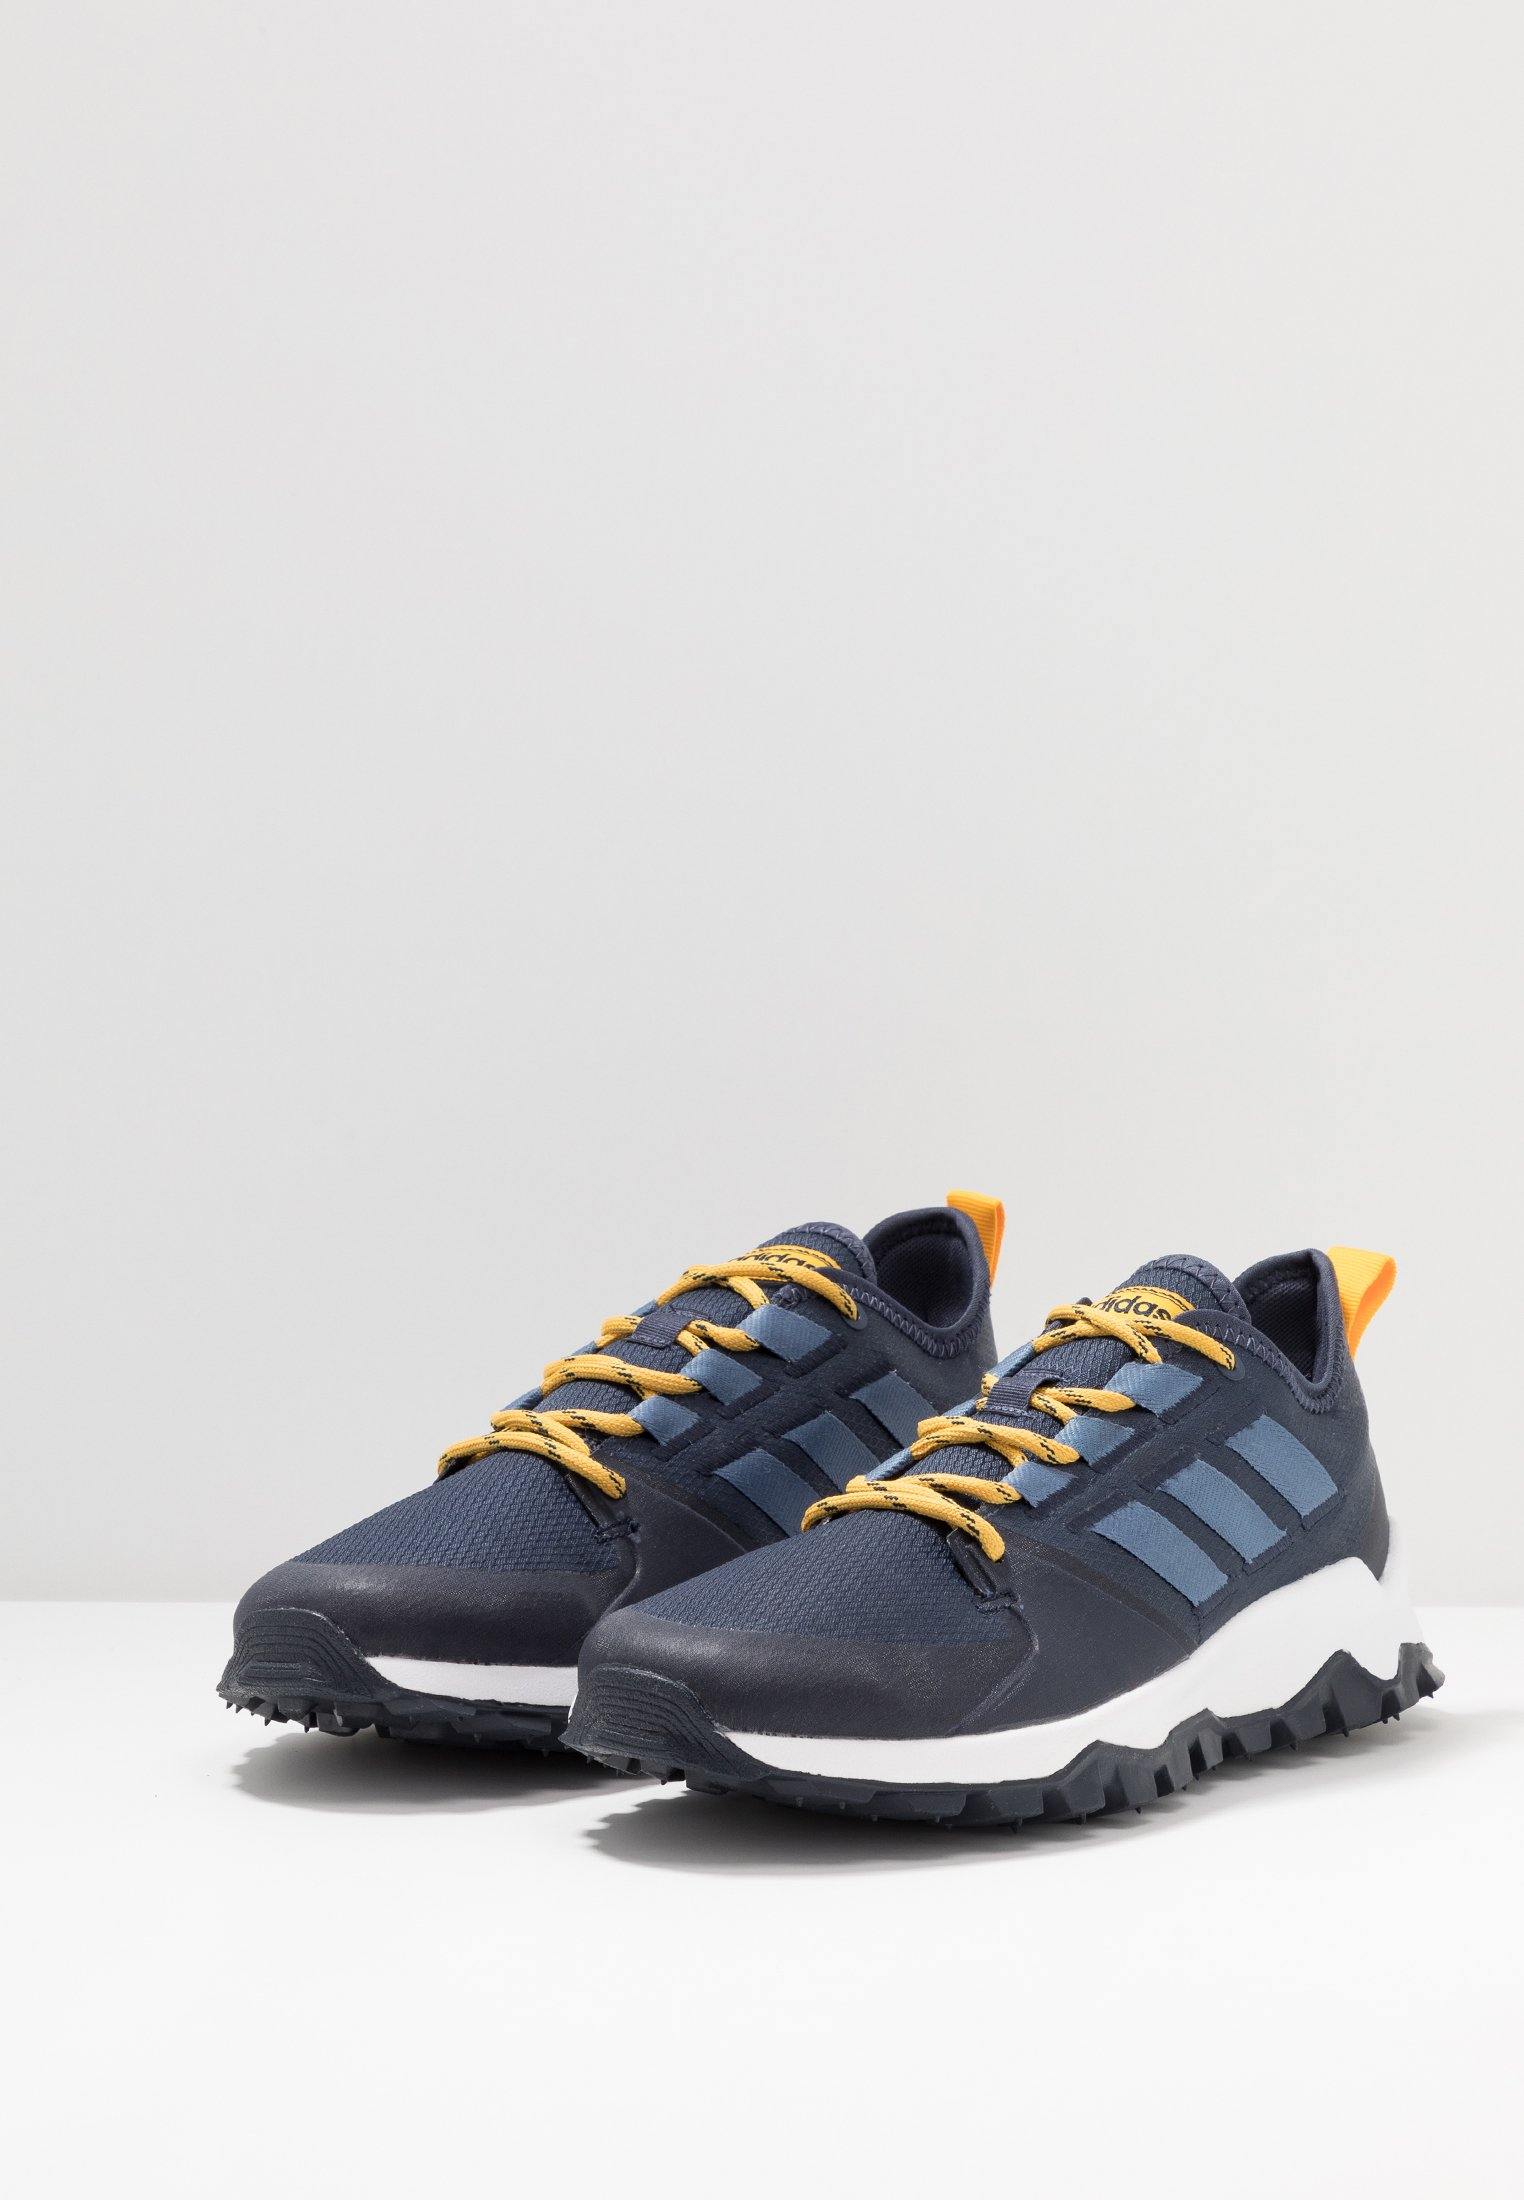 Adidas active Trace De Running Blue tech Gold Ink Performance KanadiaChaussures I7vmbfYg6y